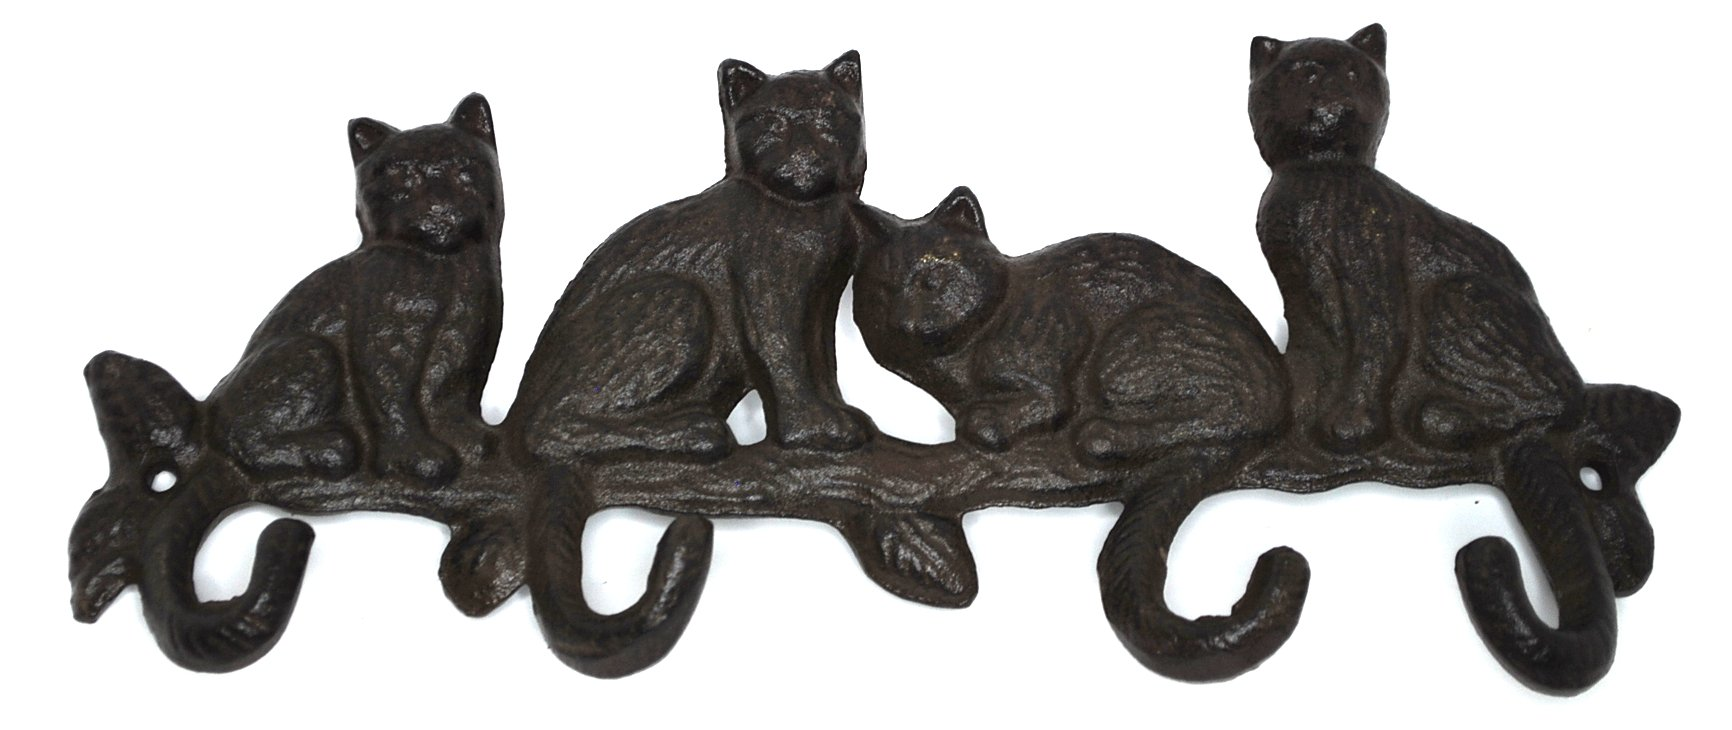 Iron Rustic Wall Hooks 4 Cats Iron Key Rack Animal Hooks Keyholder Home Decor Organizer Kitchen Bath Office Hat Bag Coat Towel Hook Purse Holder Storage Hook